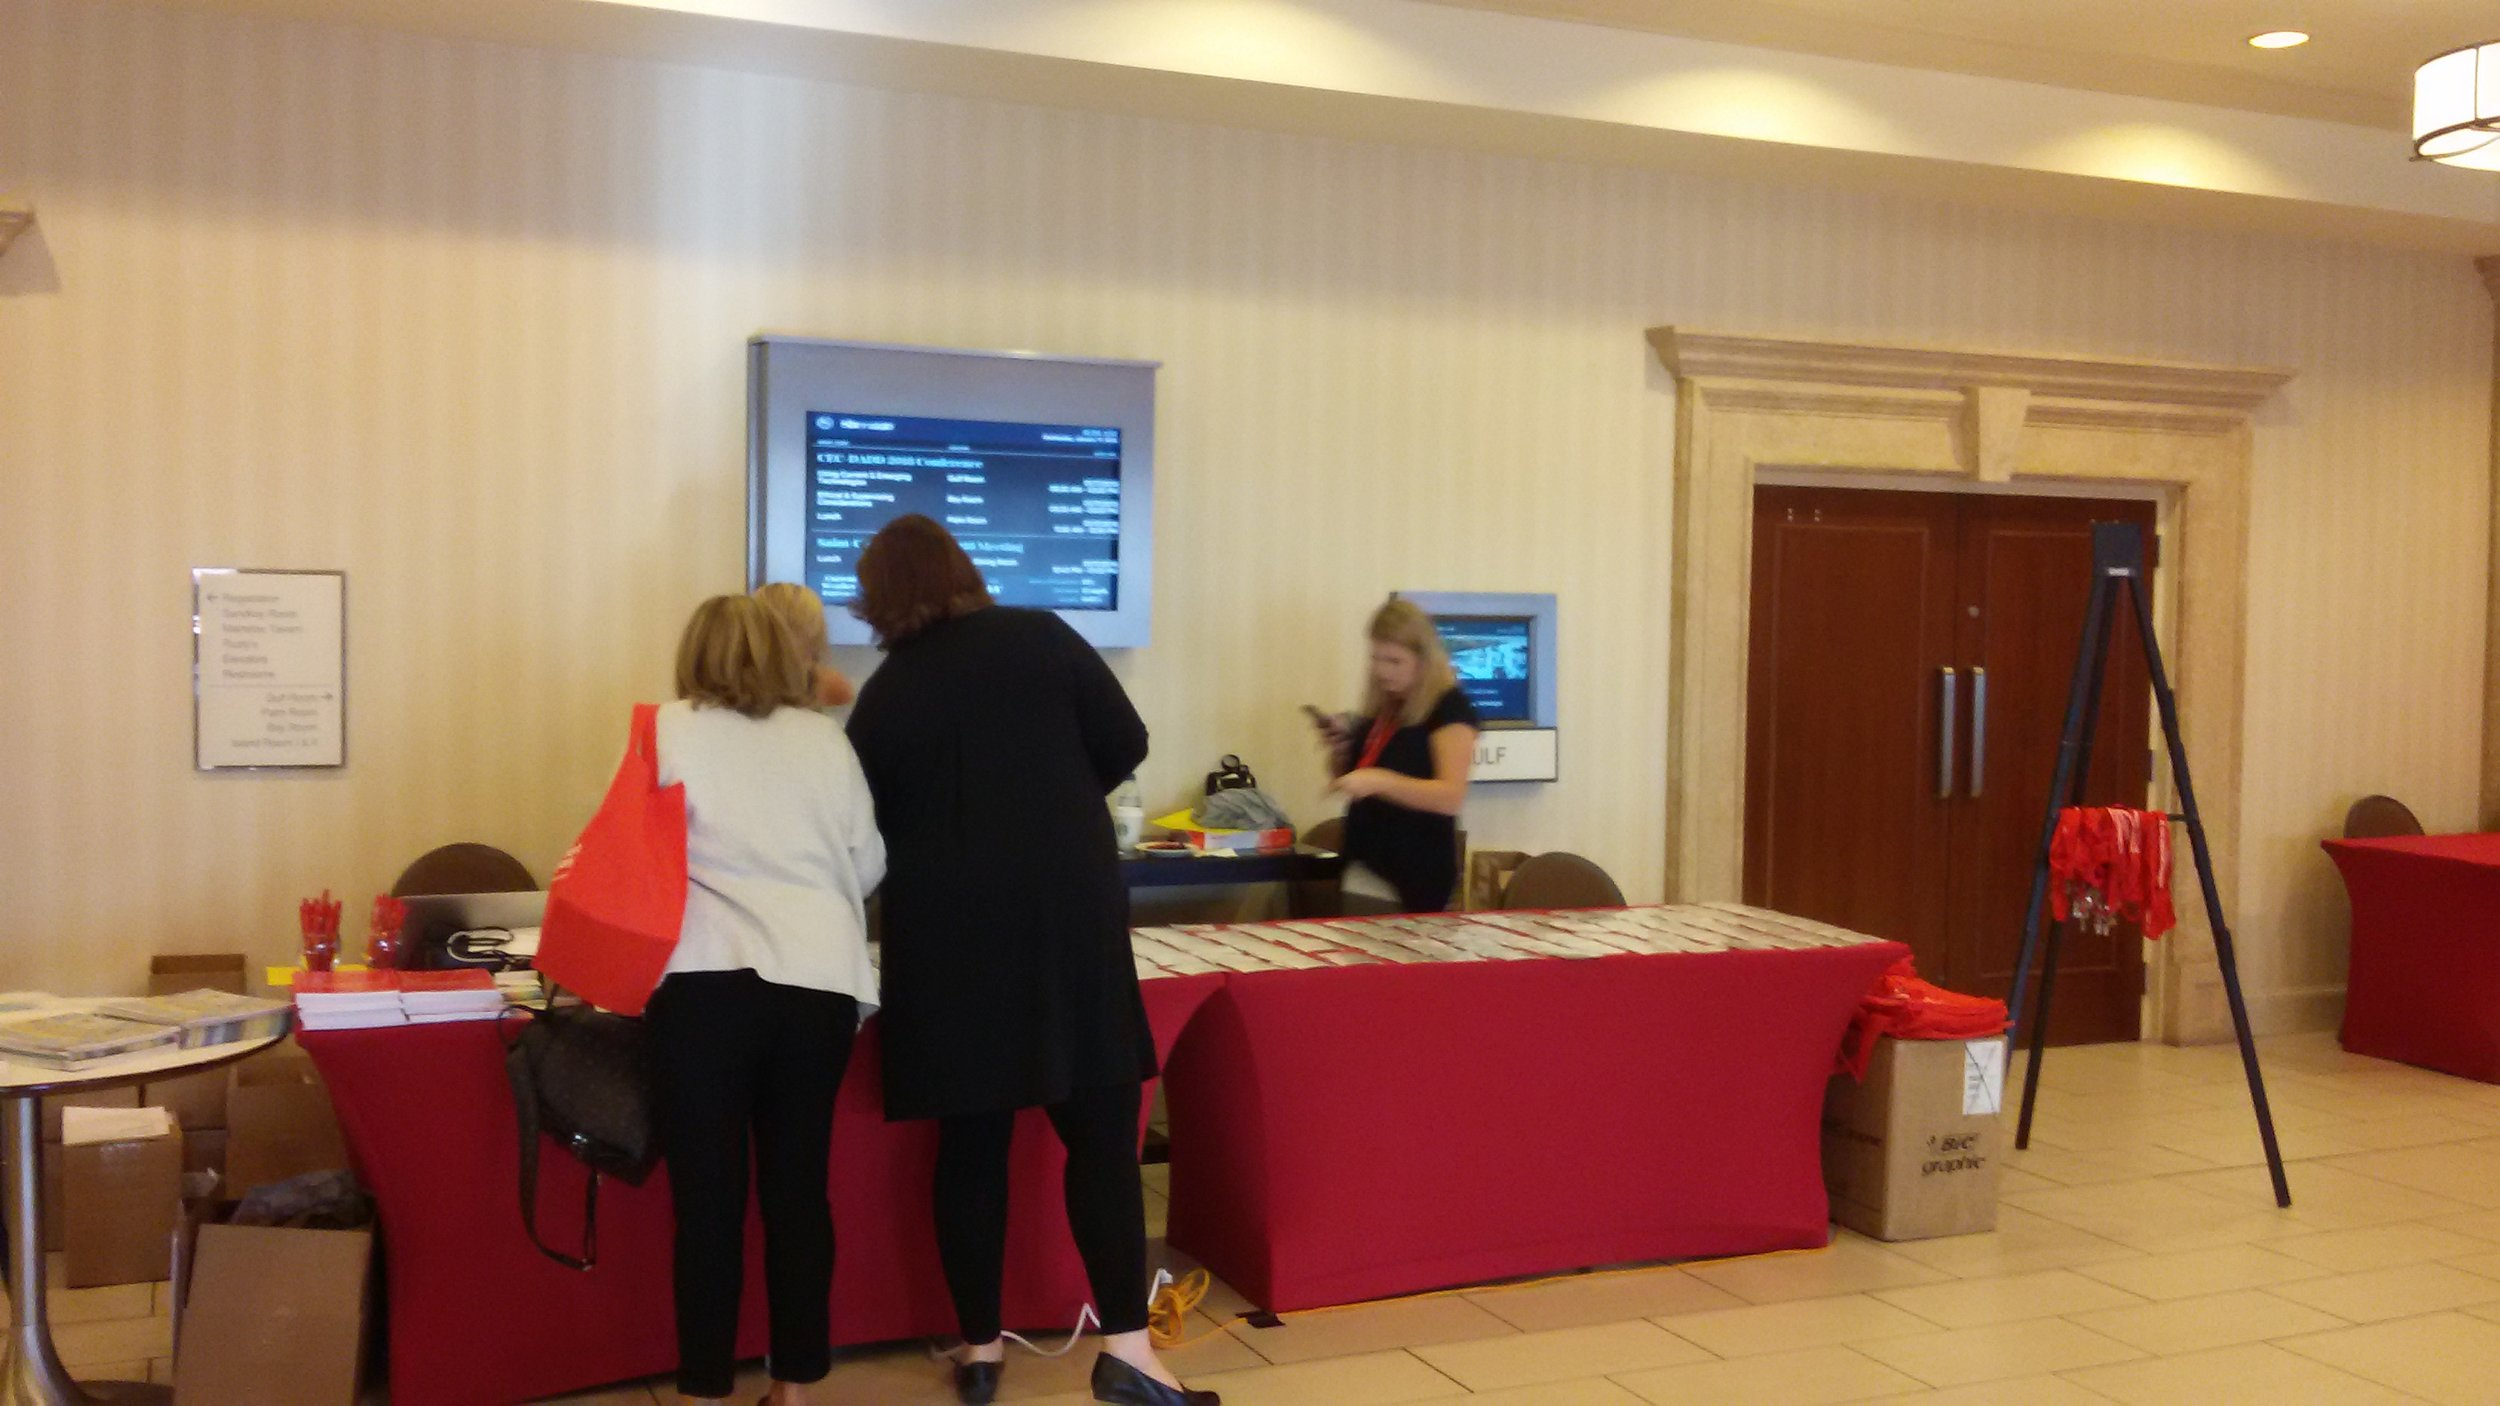 Table at the CEC-DADD 2018 conference. Two older Caucasian women look at pamphlets on a red clothed table. A Third middle-aged Caucasian women is seen checking her phone behind the table.